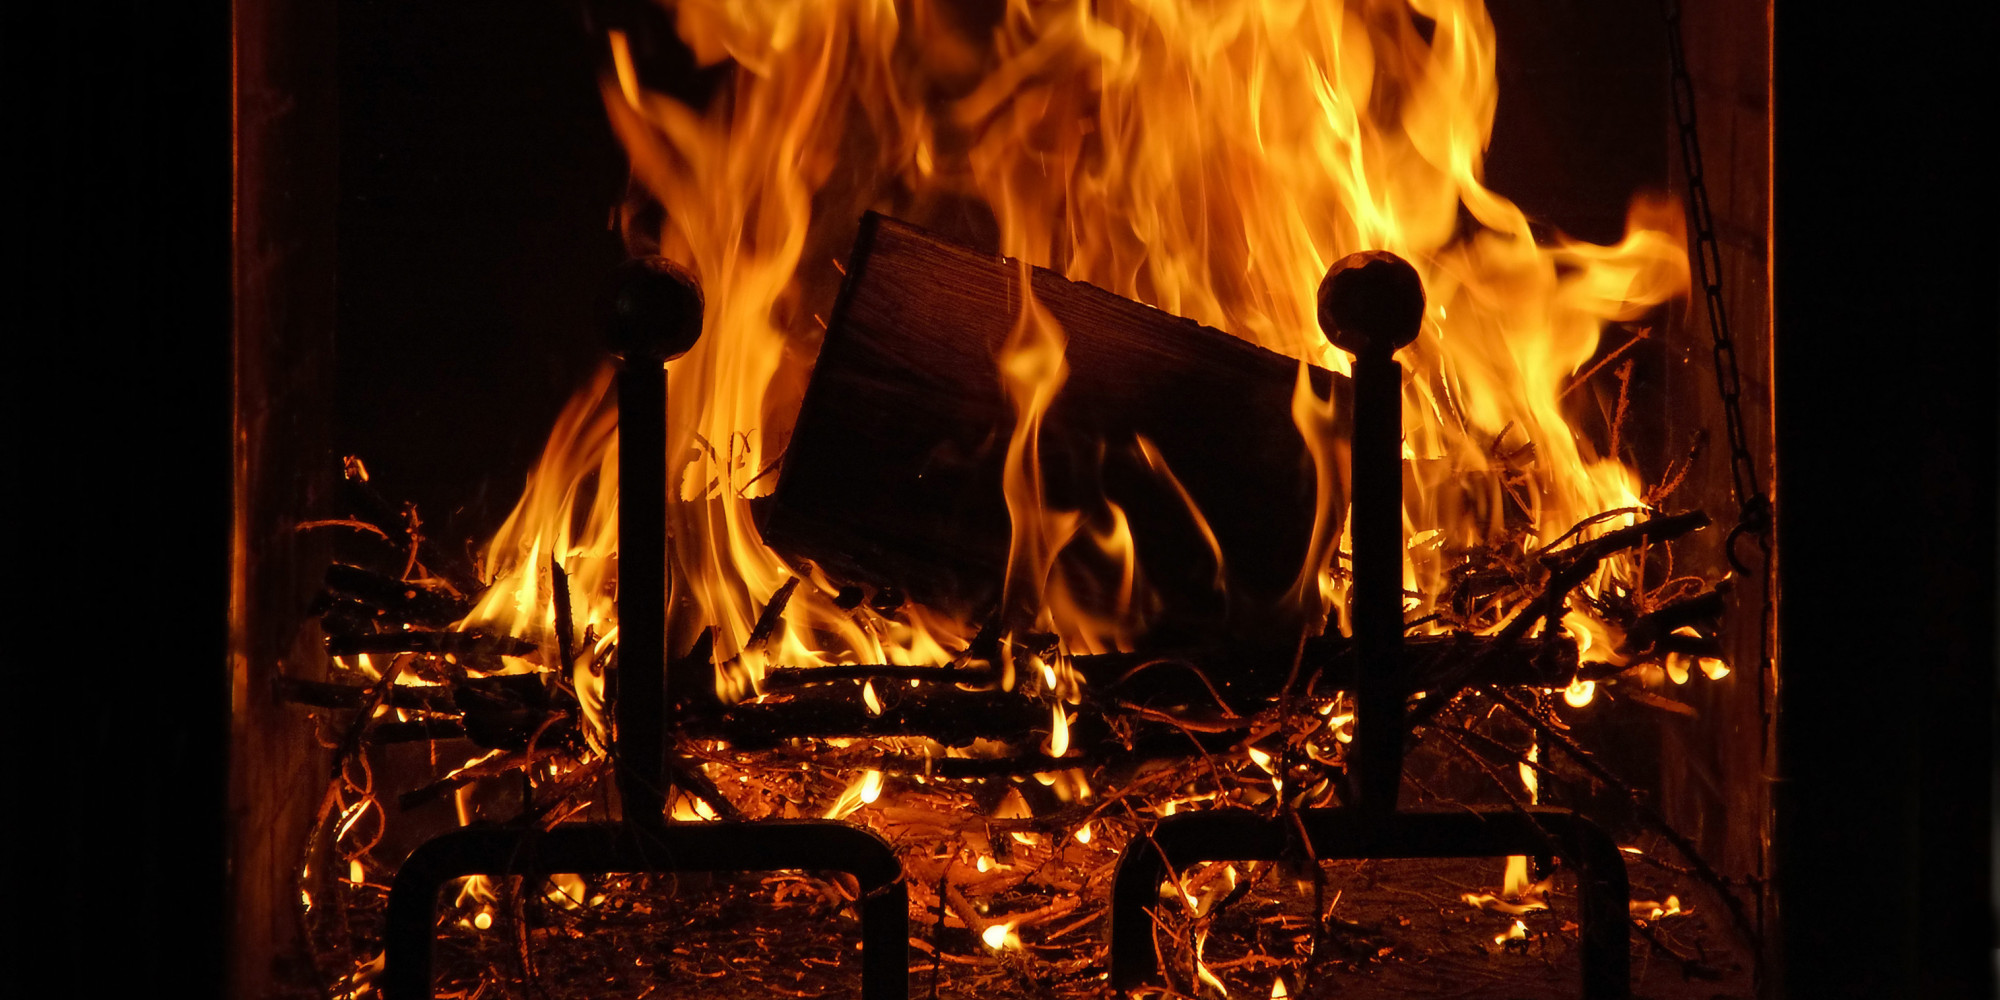 Best Fires Cheminées The Evolutionary Reason Why We Love Sitting By A Crackling